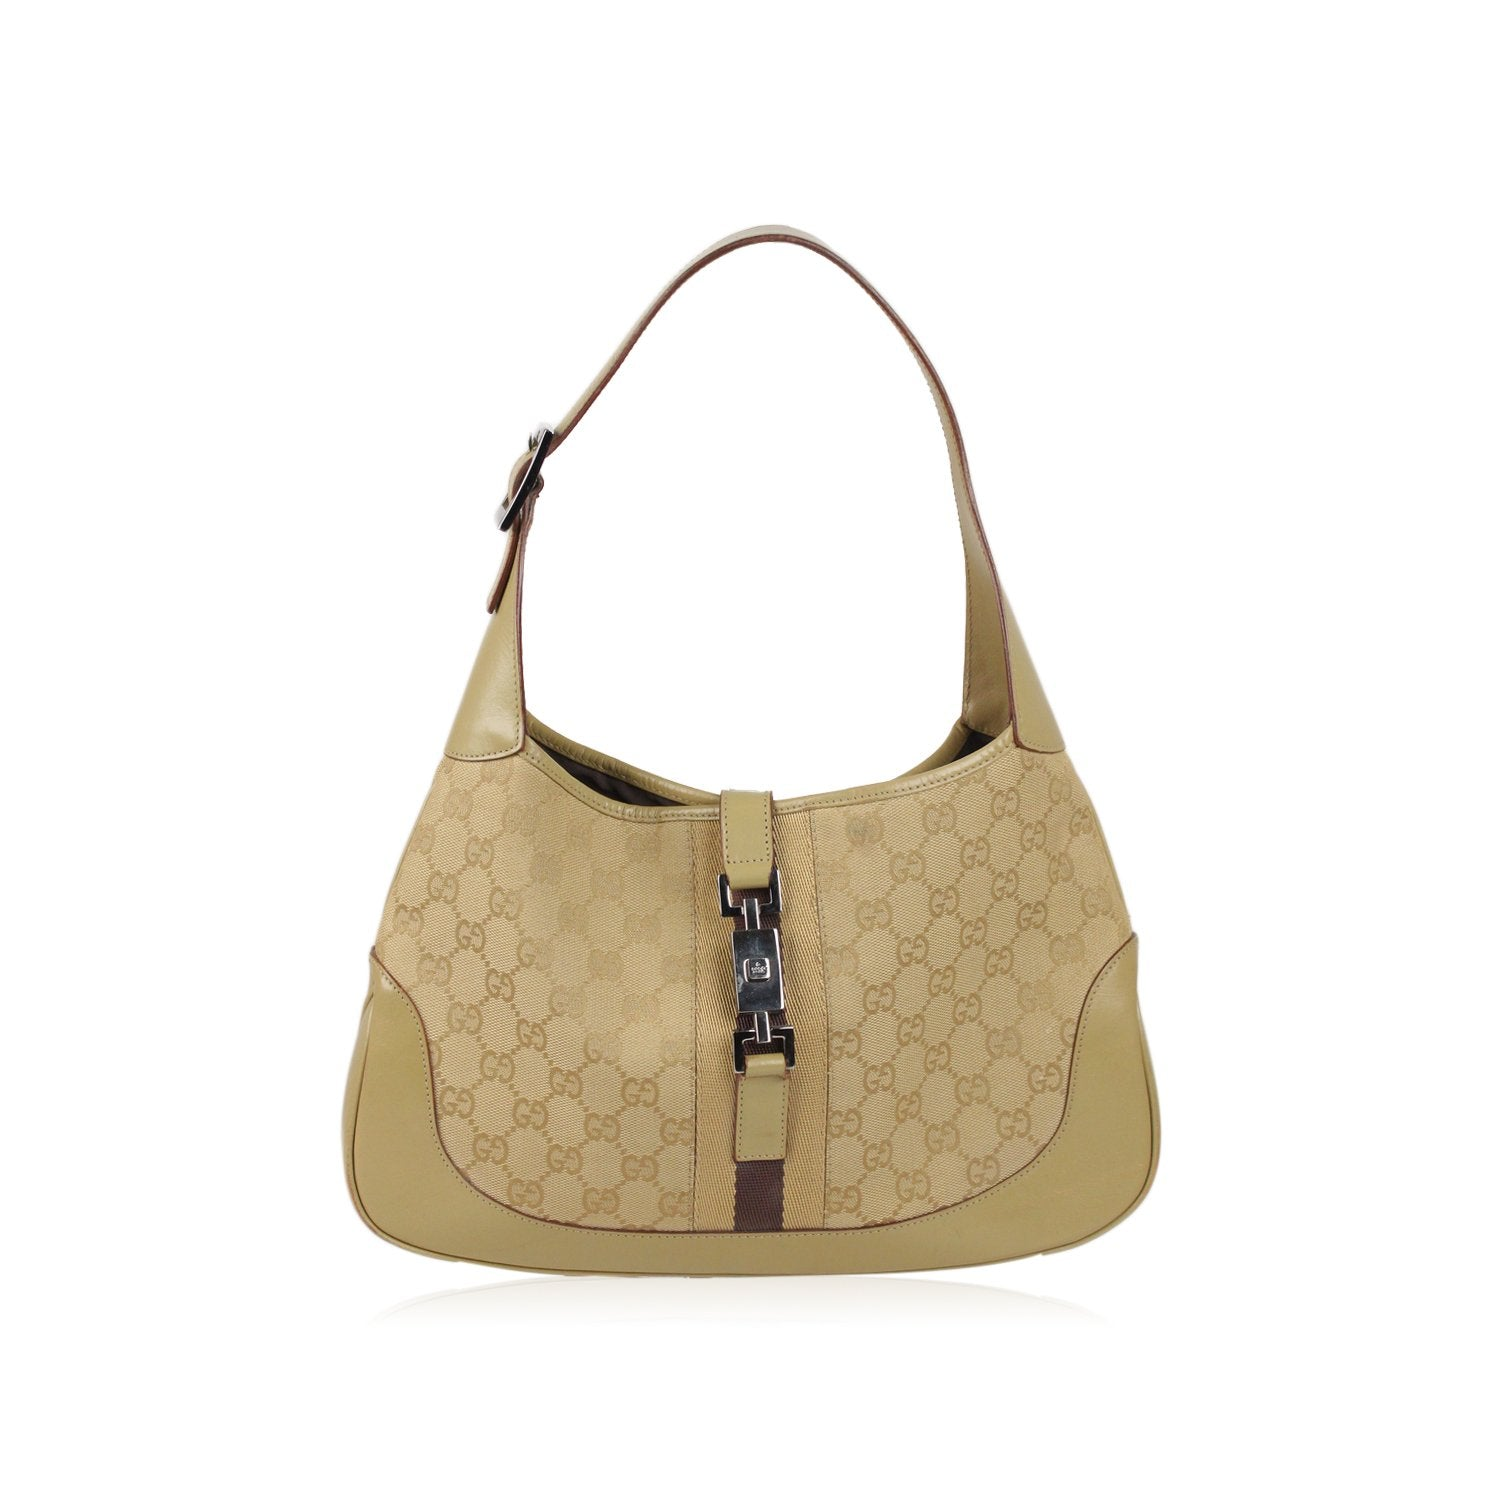 5767ad0e1c3 Enjoy Gucci Monogram Canvas Hobo Jackie O Bag at OPHERTYCIOCCI – OPHERTY    CIOCCI